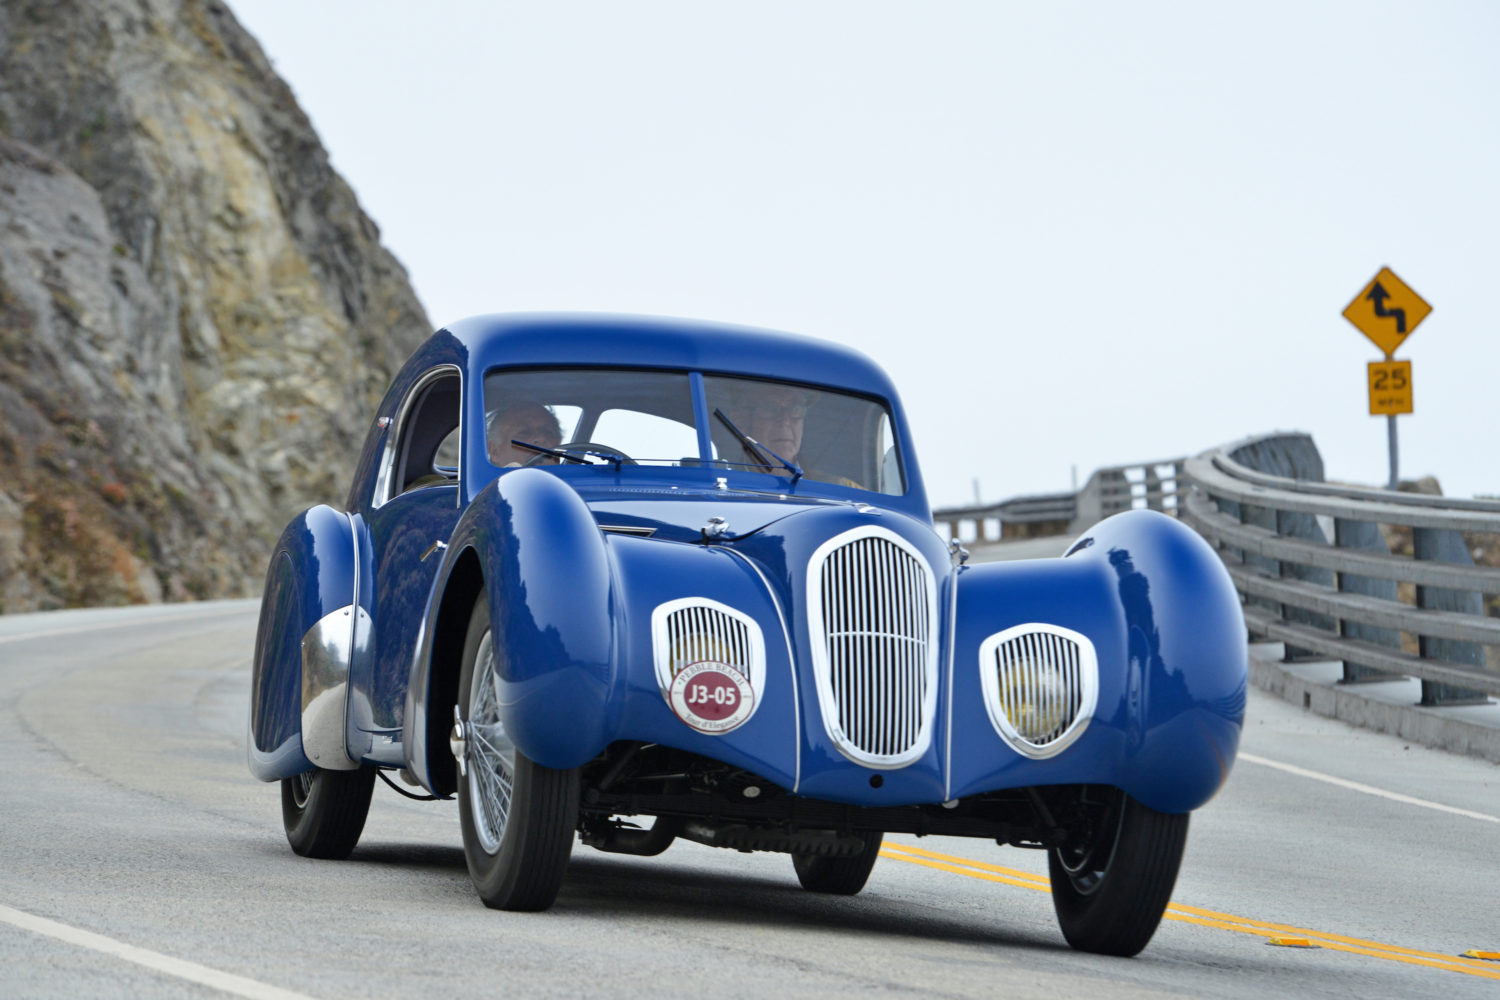 Car of the Week #4: Talbot-Lago 'Pourtout Coupe'